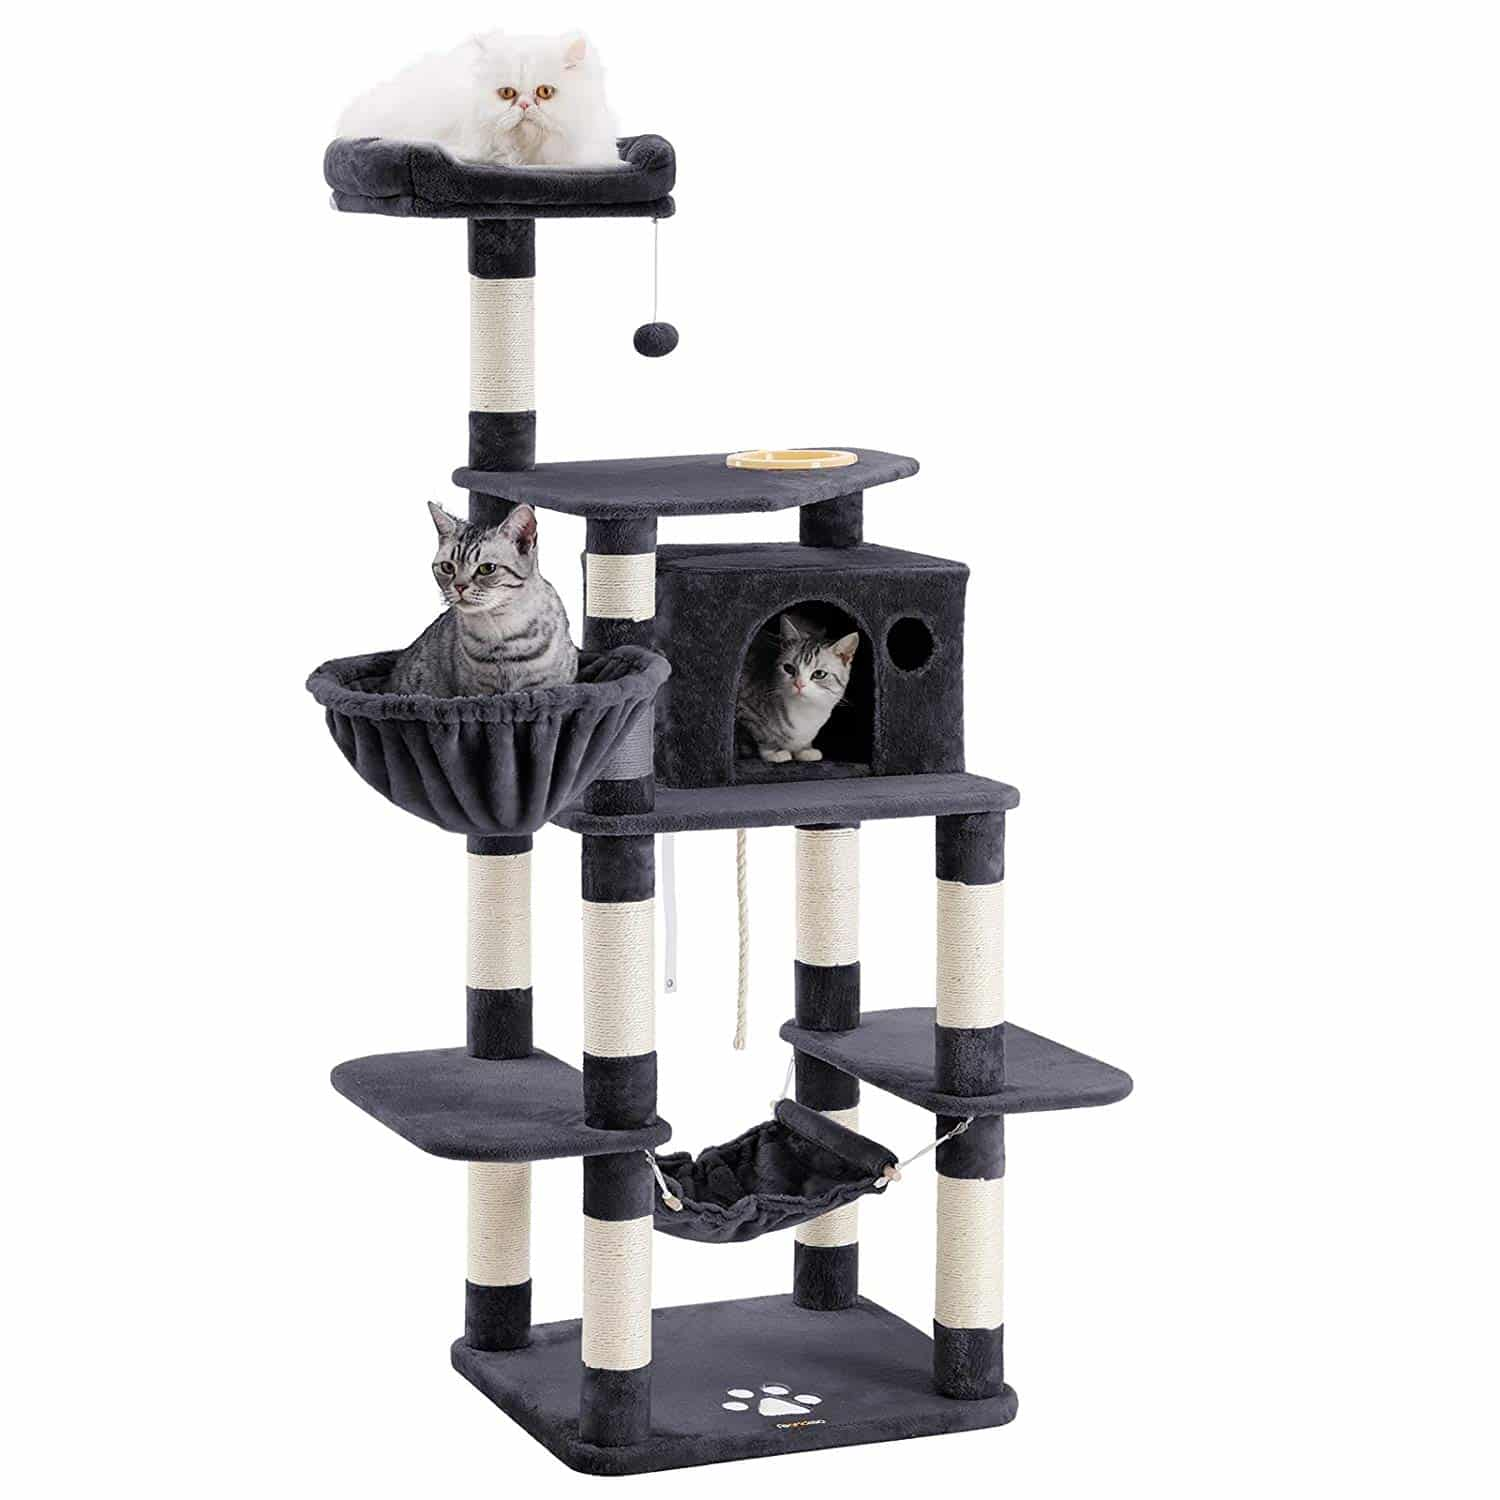 2. FEANDREA 68.5 inches Sturdy Cat Tree